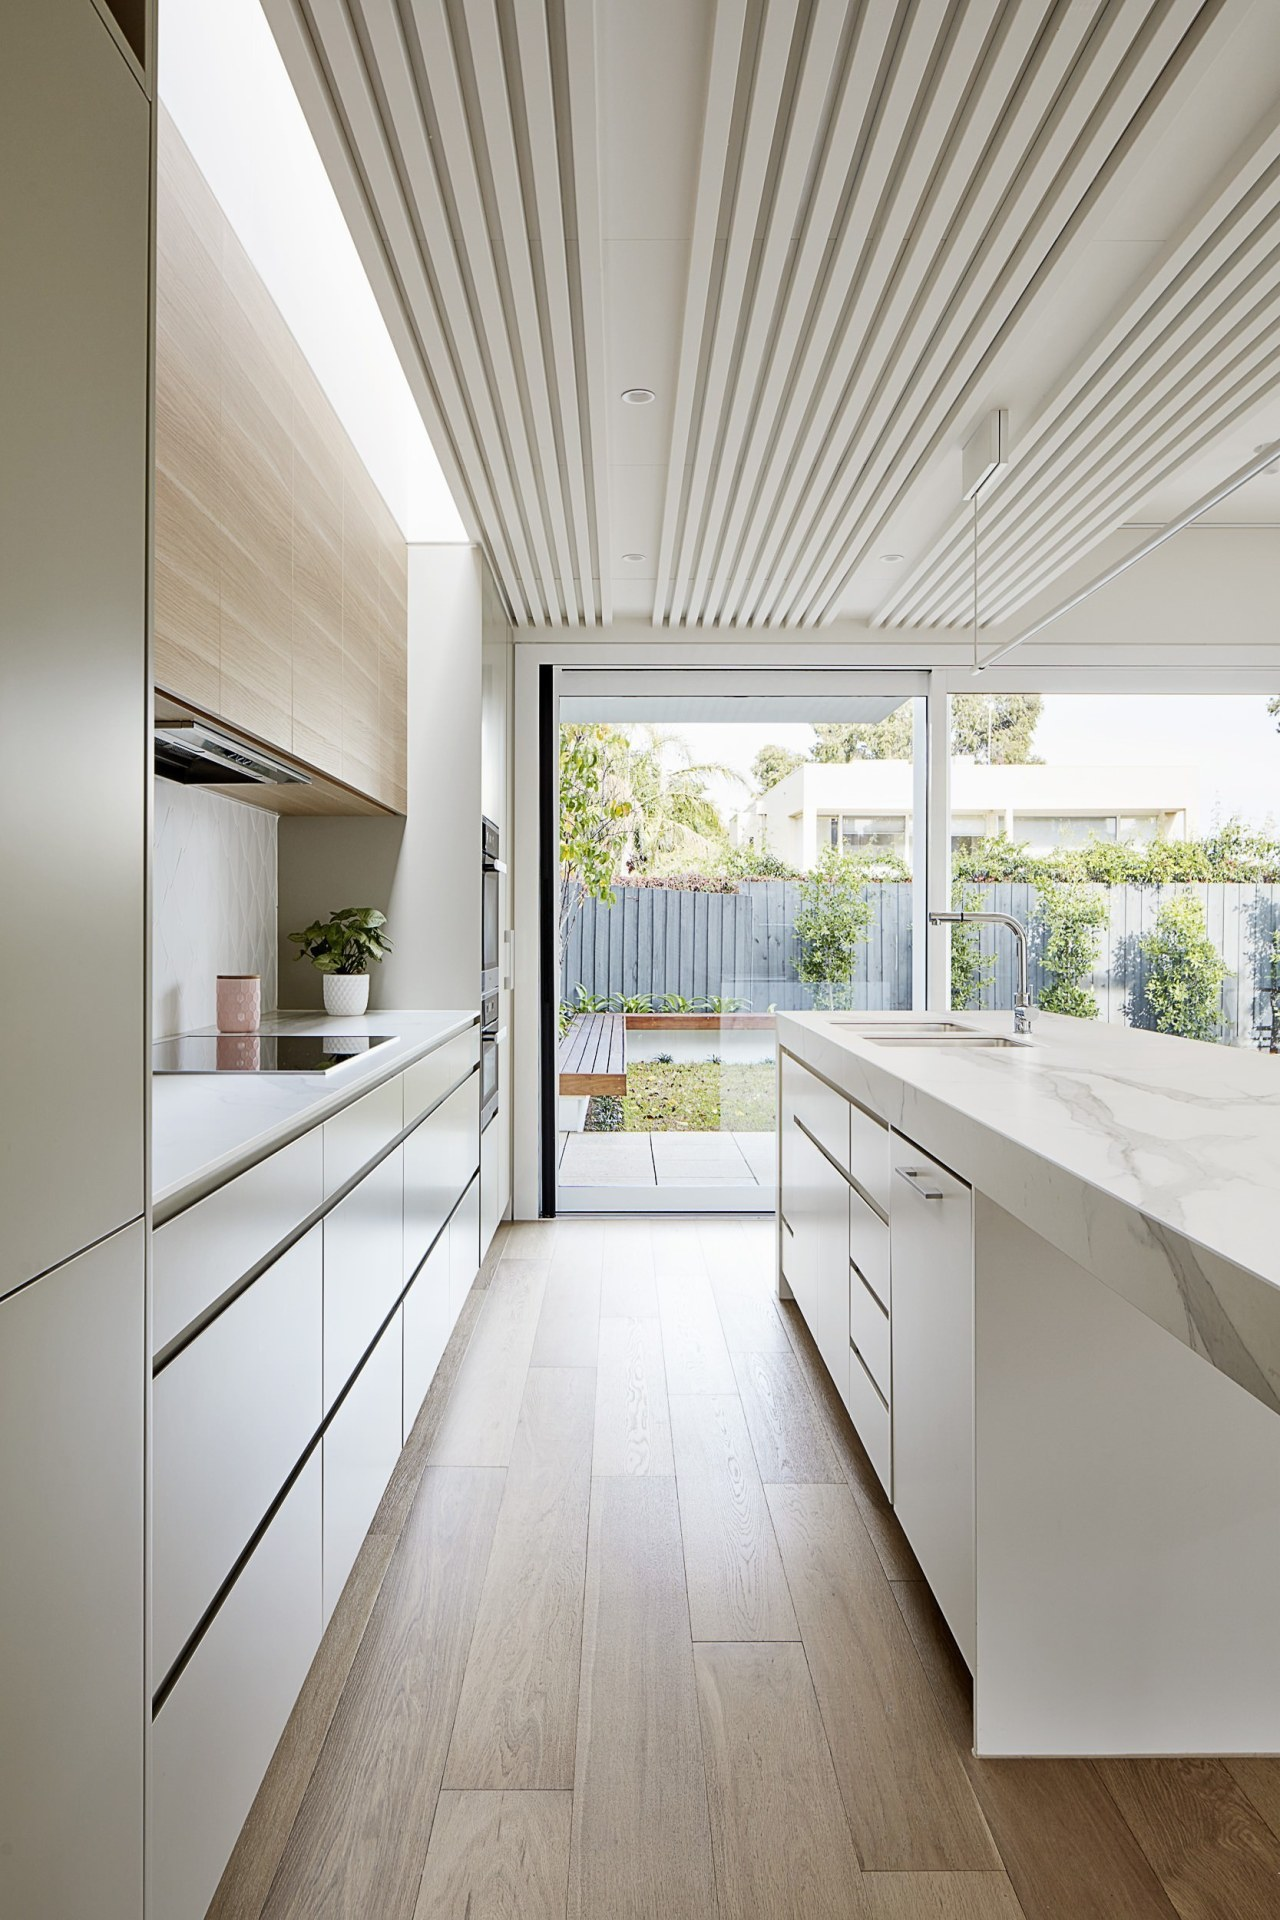 The kitchen opens right out onto the backyard architecture, ceiling, countertop, daylighting, floor, house, interior design, kitchen, real estate, window, gray, white